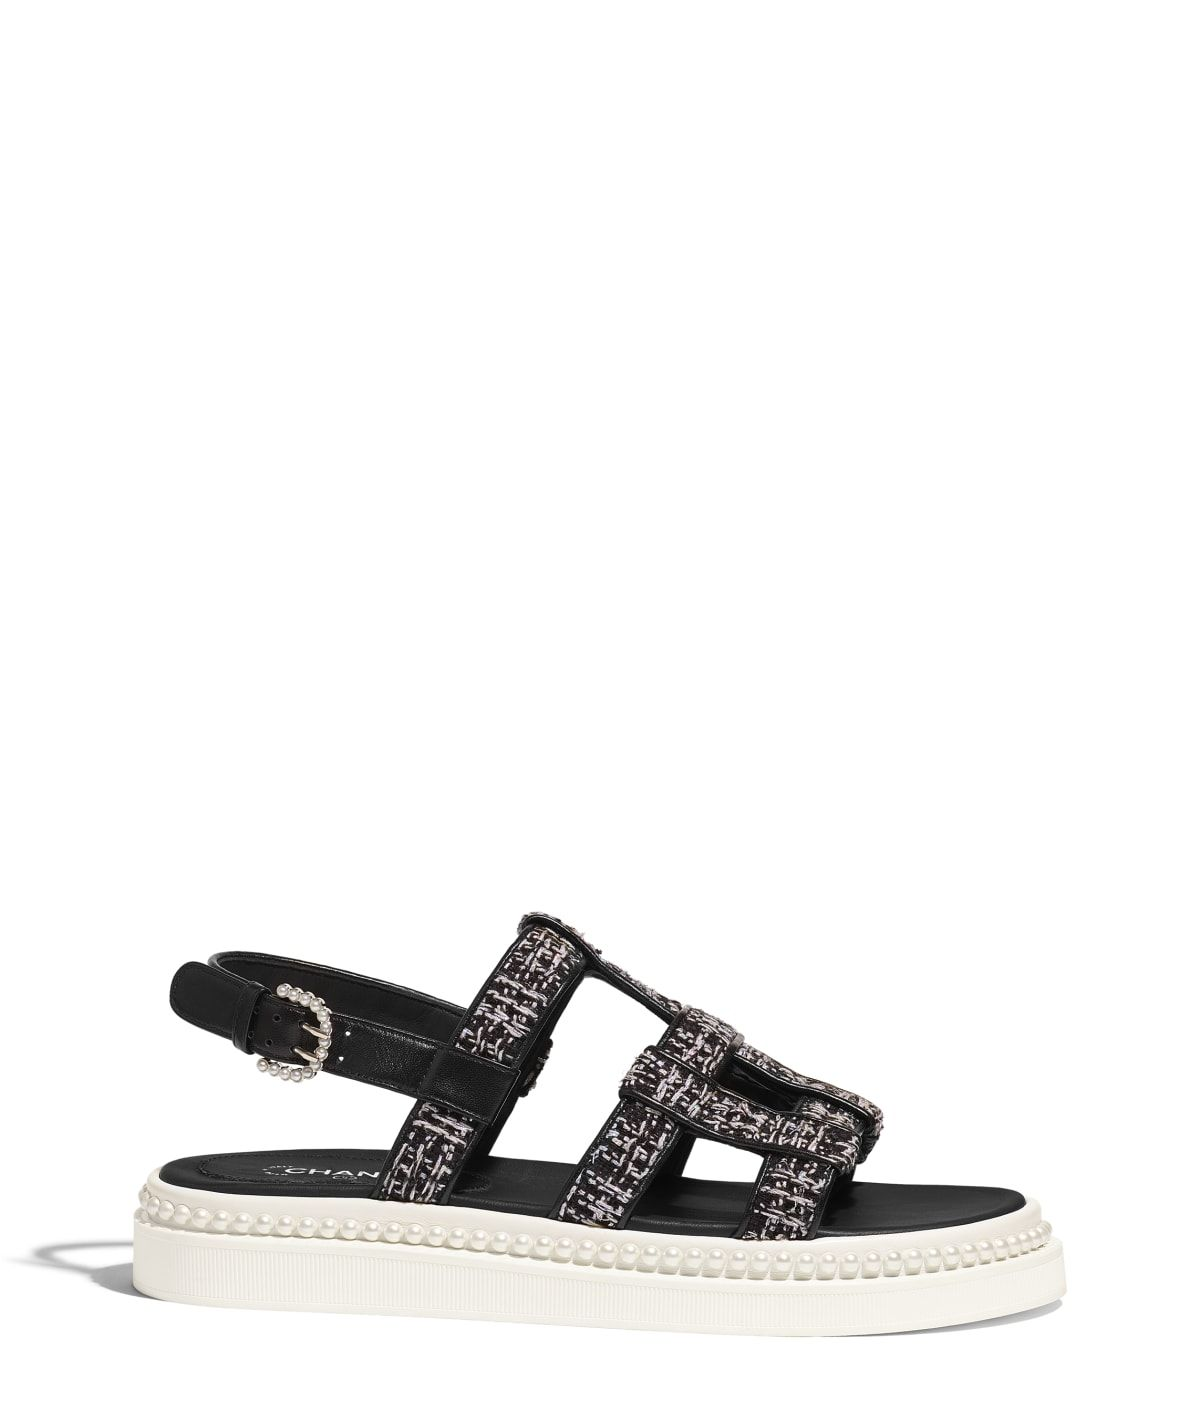 59ea74611e03 Shoes of the Spring-Summer 2019 Pre-Collection CHANEL Fashion collection    Sandals